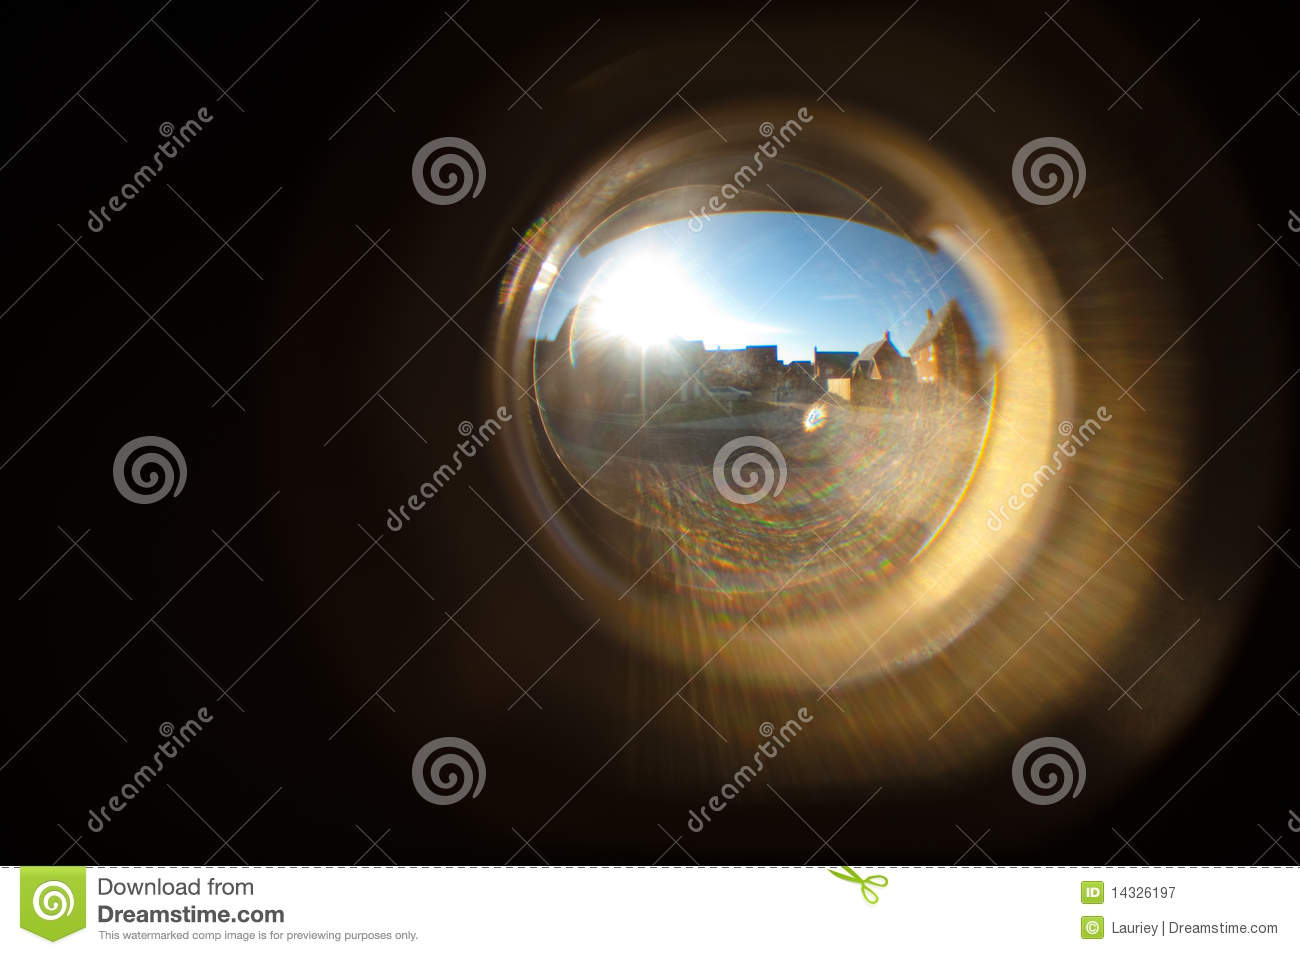 Captivating Houses In Door Peep Hole Royalty Free Stock Photography